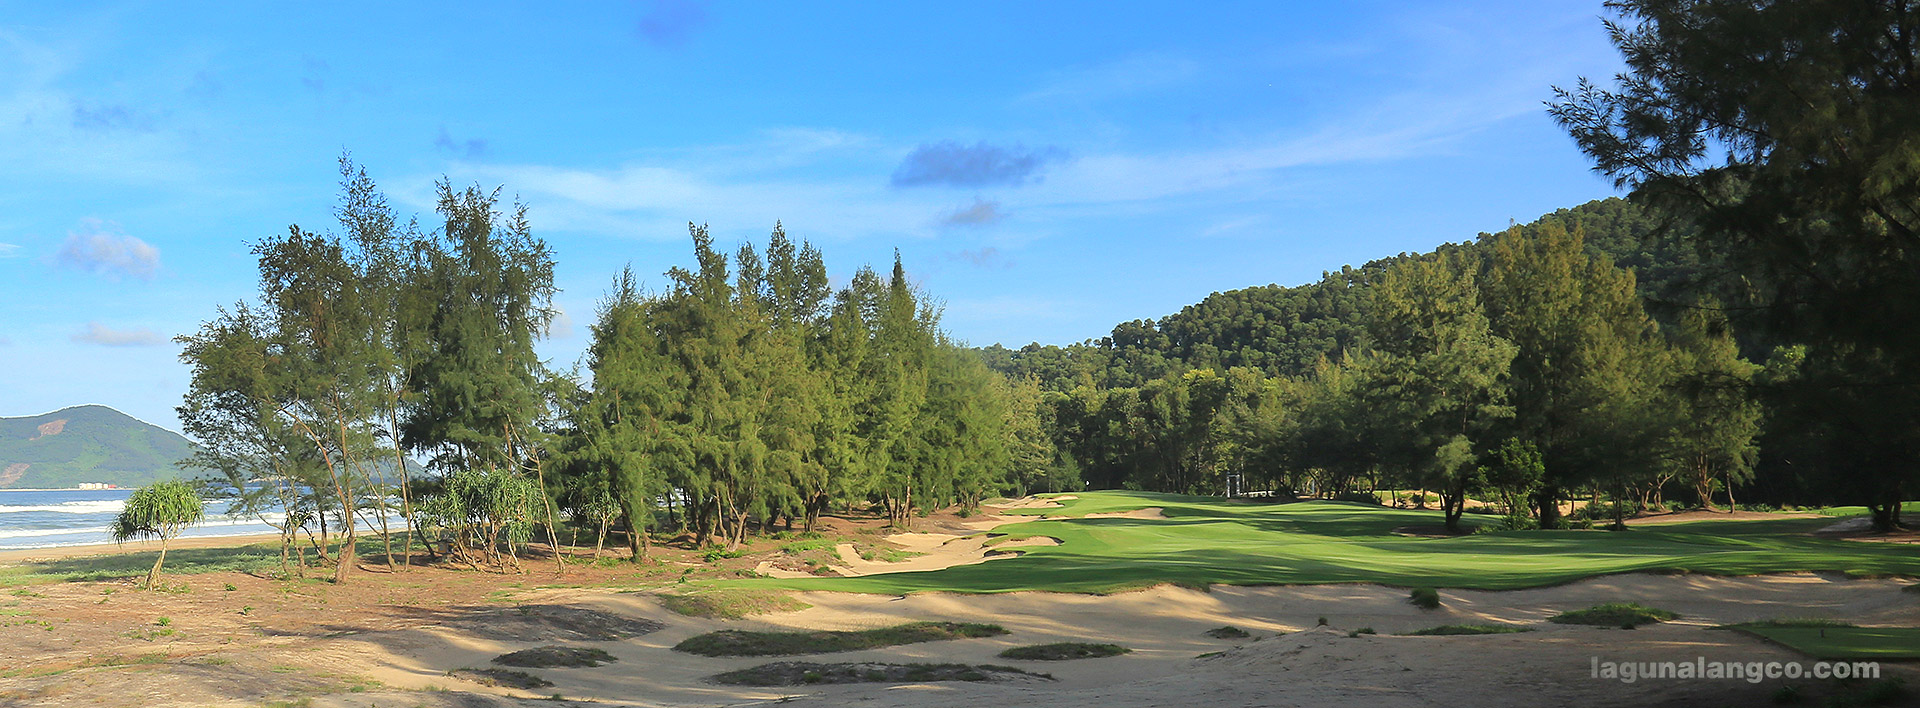 Laguna Golf Lang Co - Central Vietnam - Hole 09